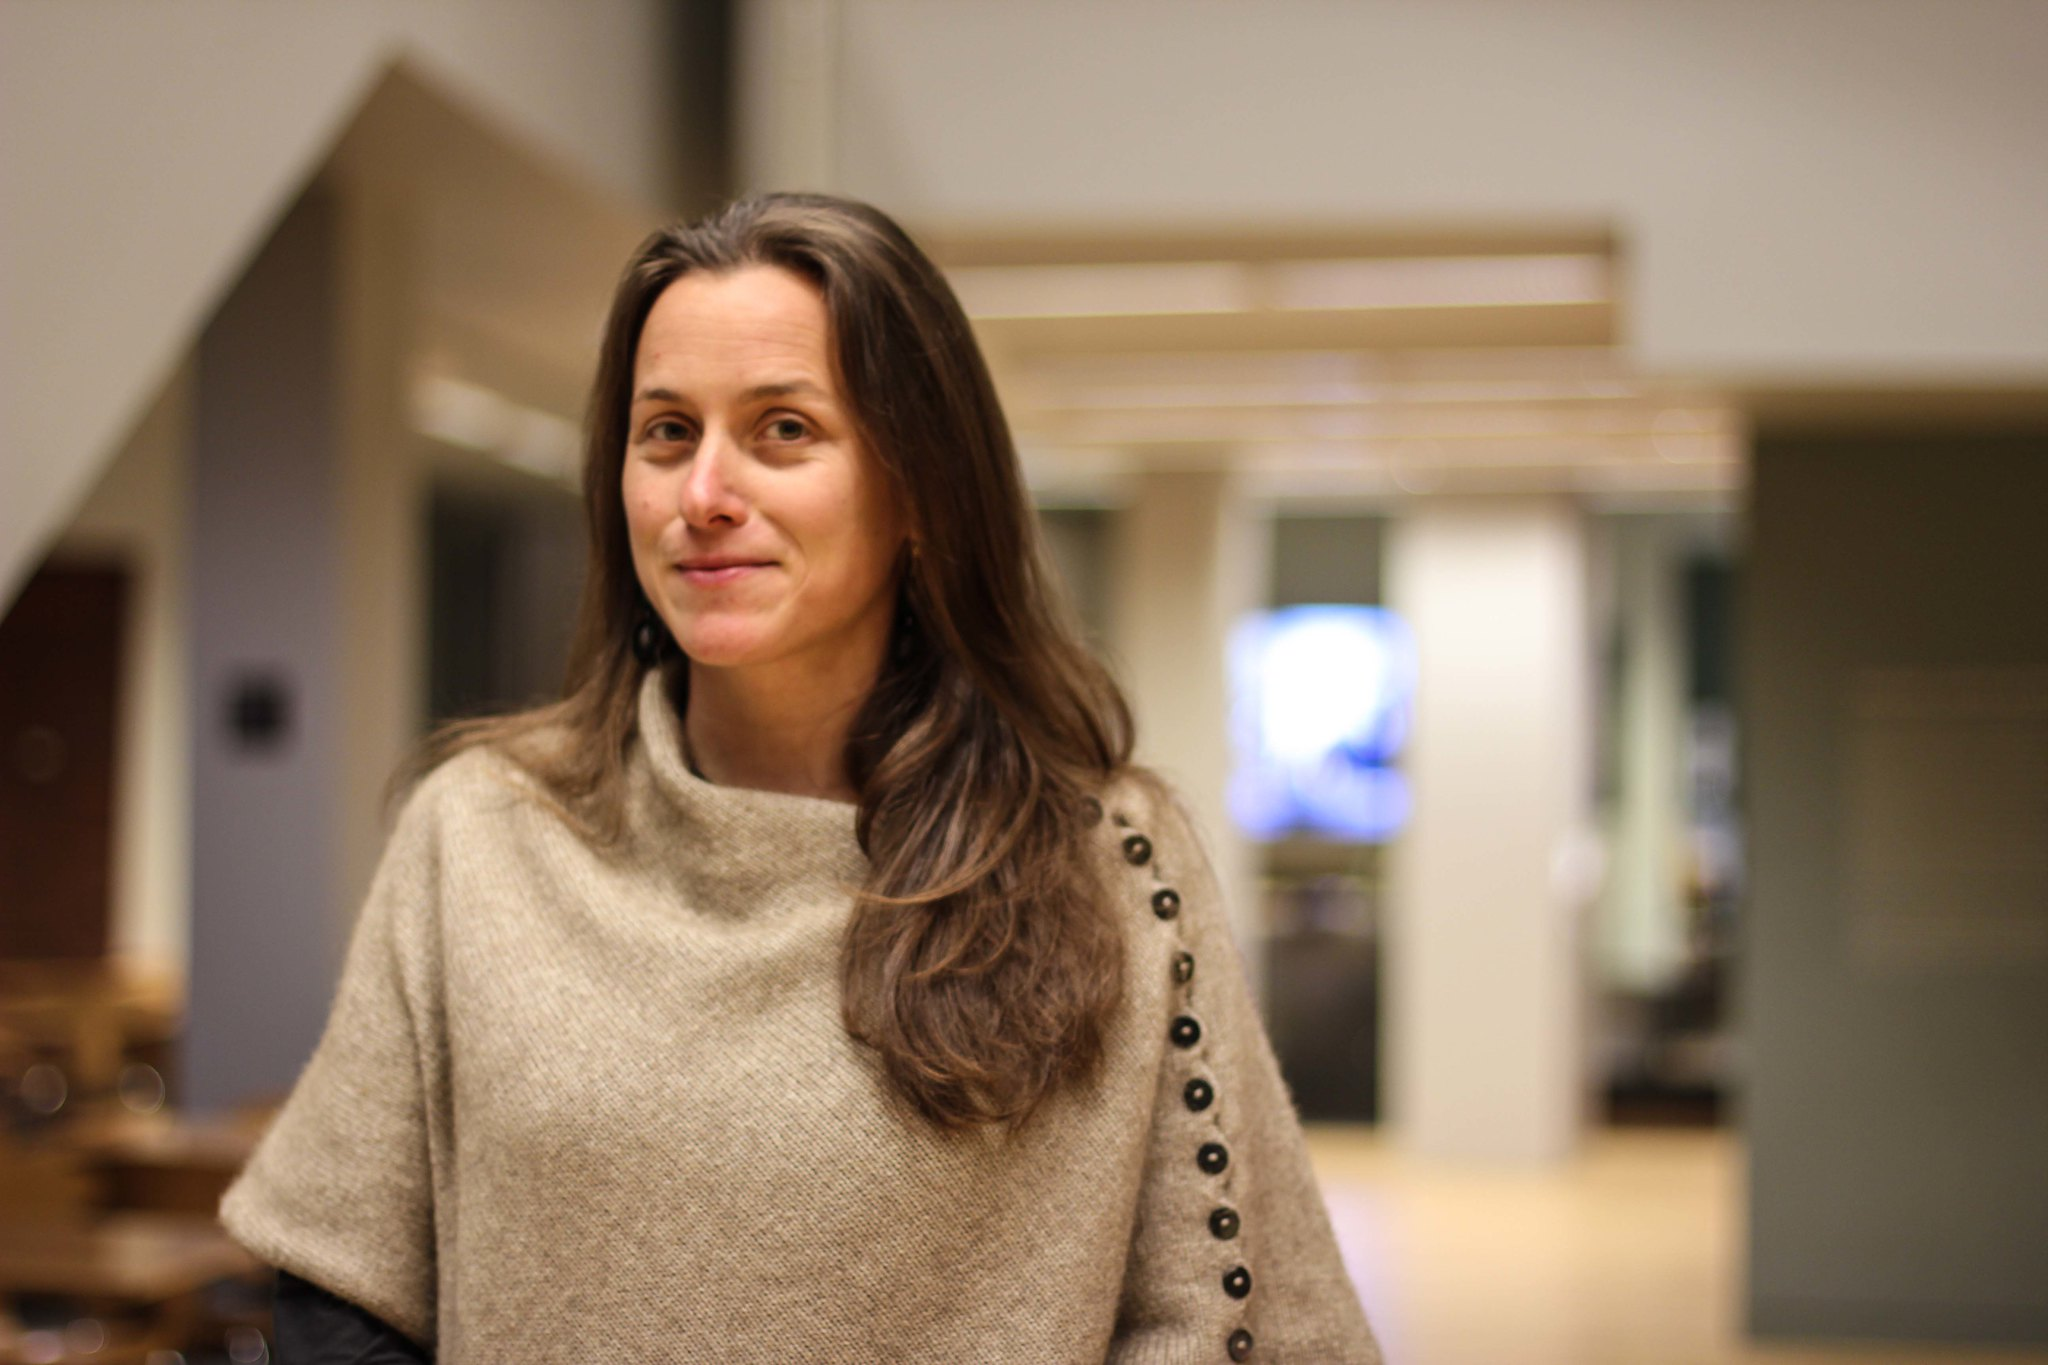 Filmmaker Natalia Almada in the lobby of the Wexner Center for the Arts at The Ohio State University during a September 26, 2012 visit to introduce her film El Veledor